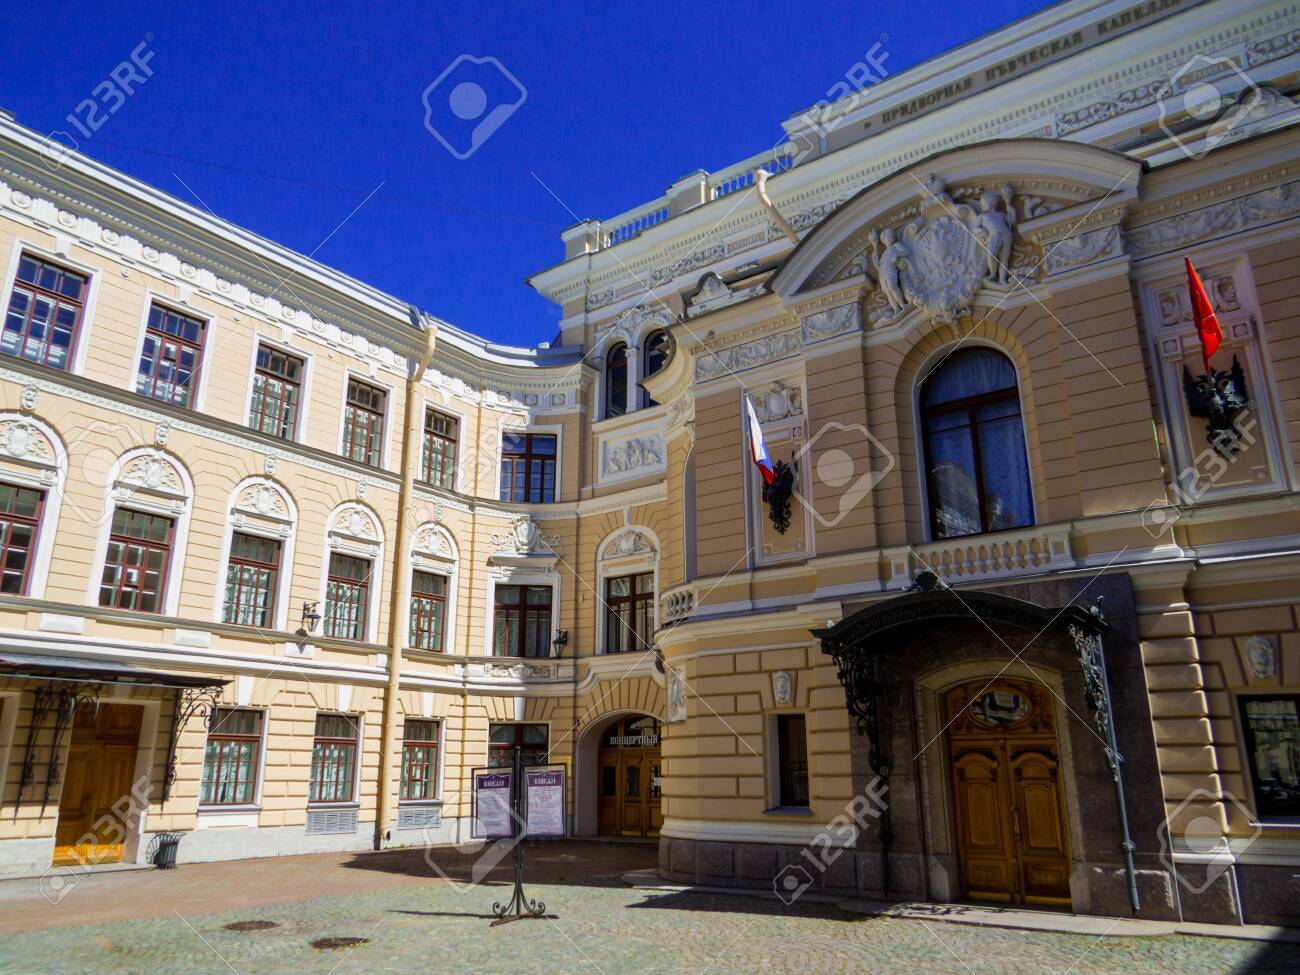 St. Petersburg, Russia - July 26, 2020: View of the Concert Hall in the old town. - 152365065